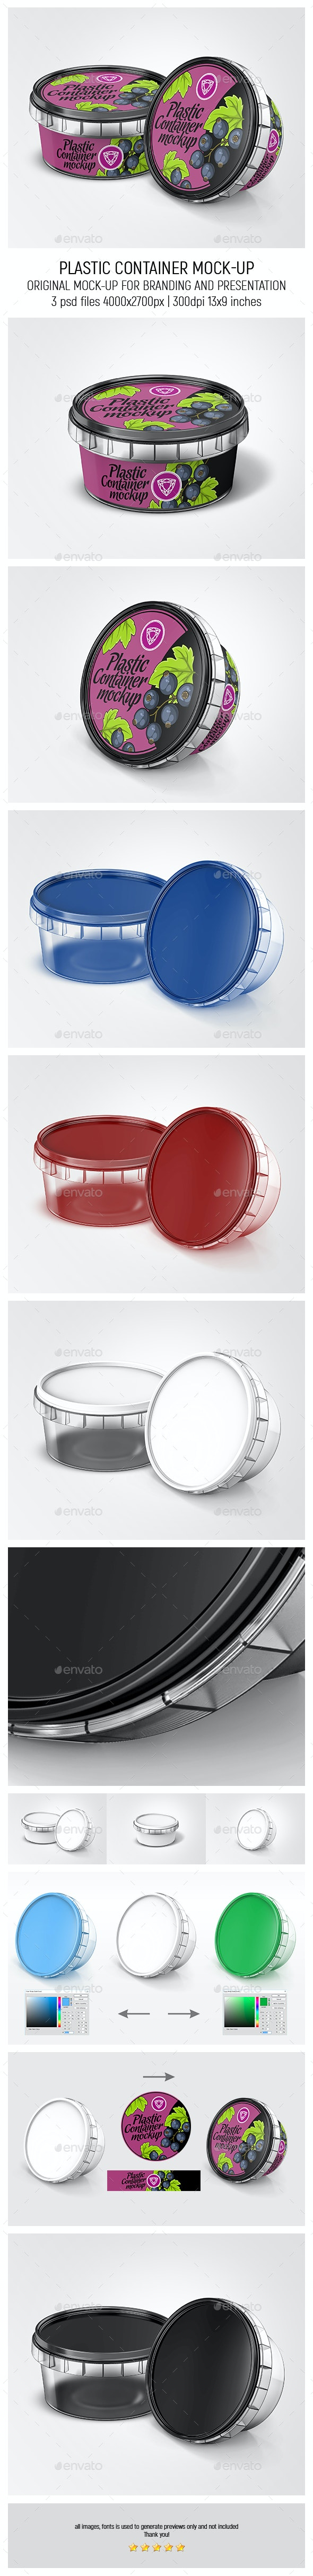 Plastic Container Mock-up - Food and Drink Packaging